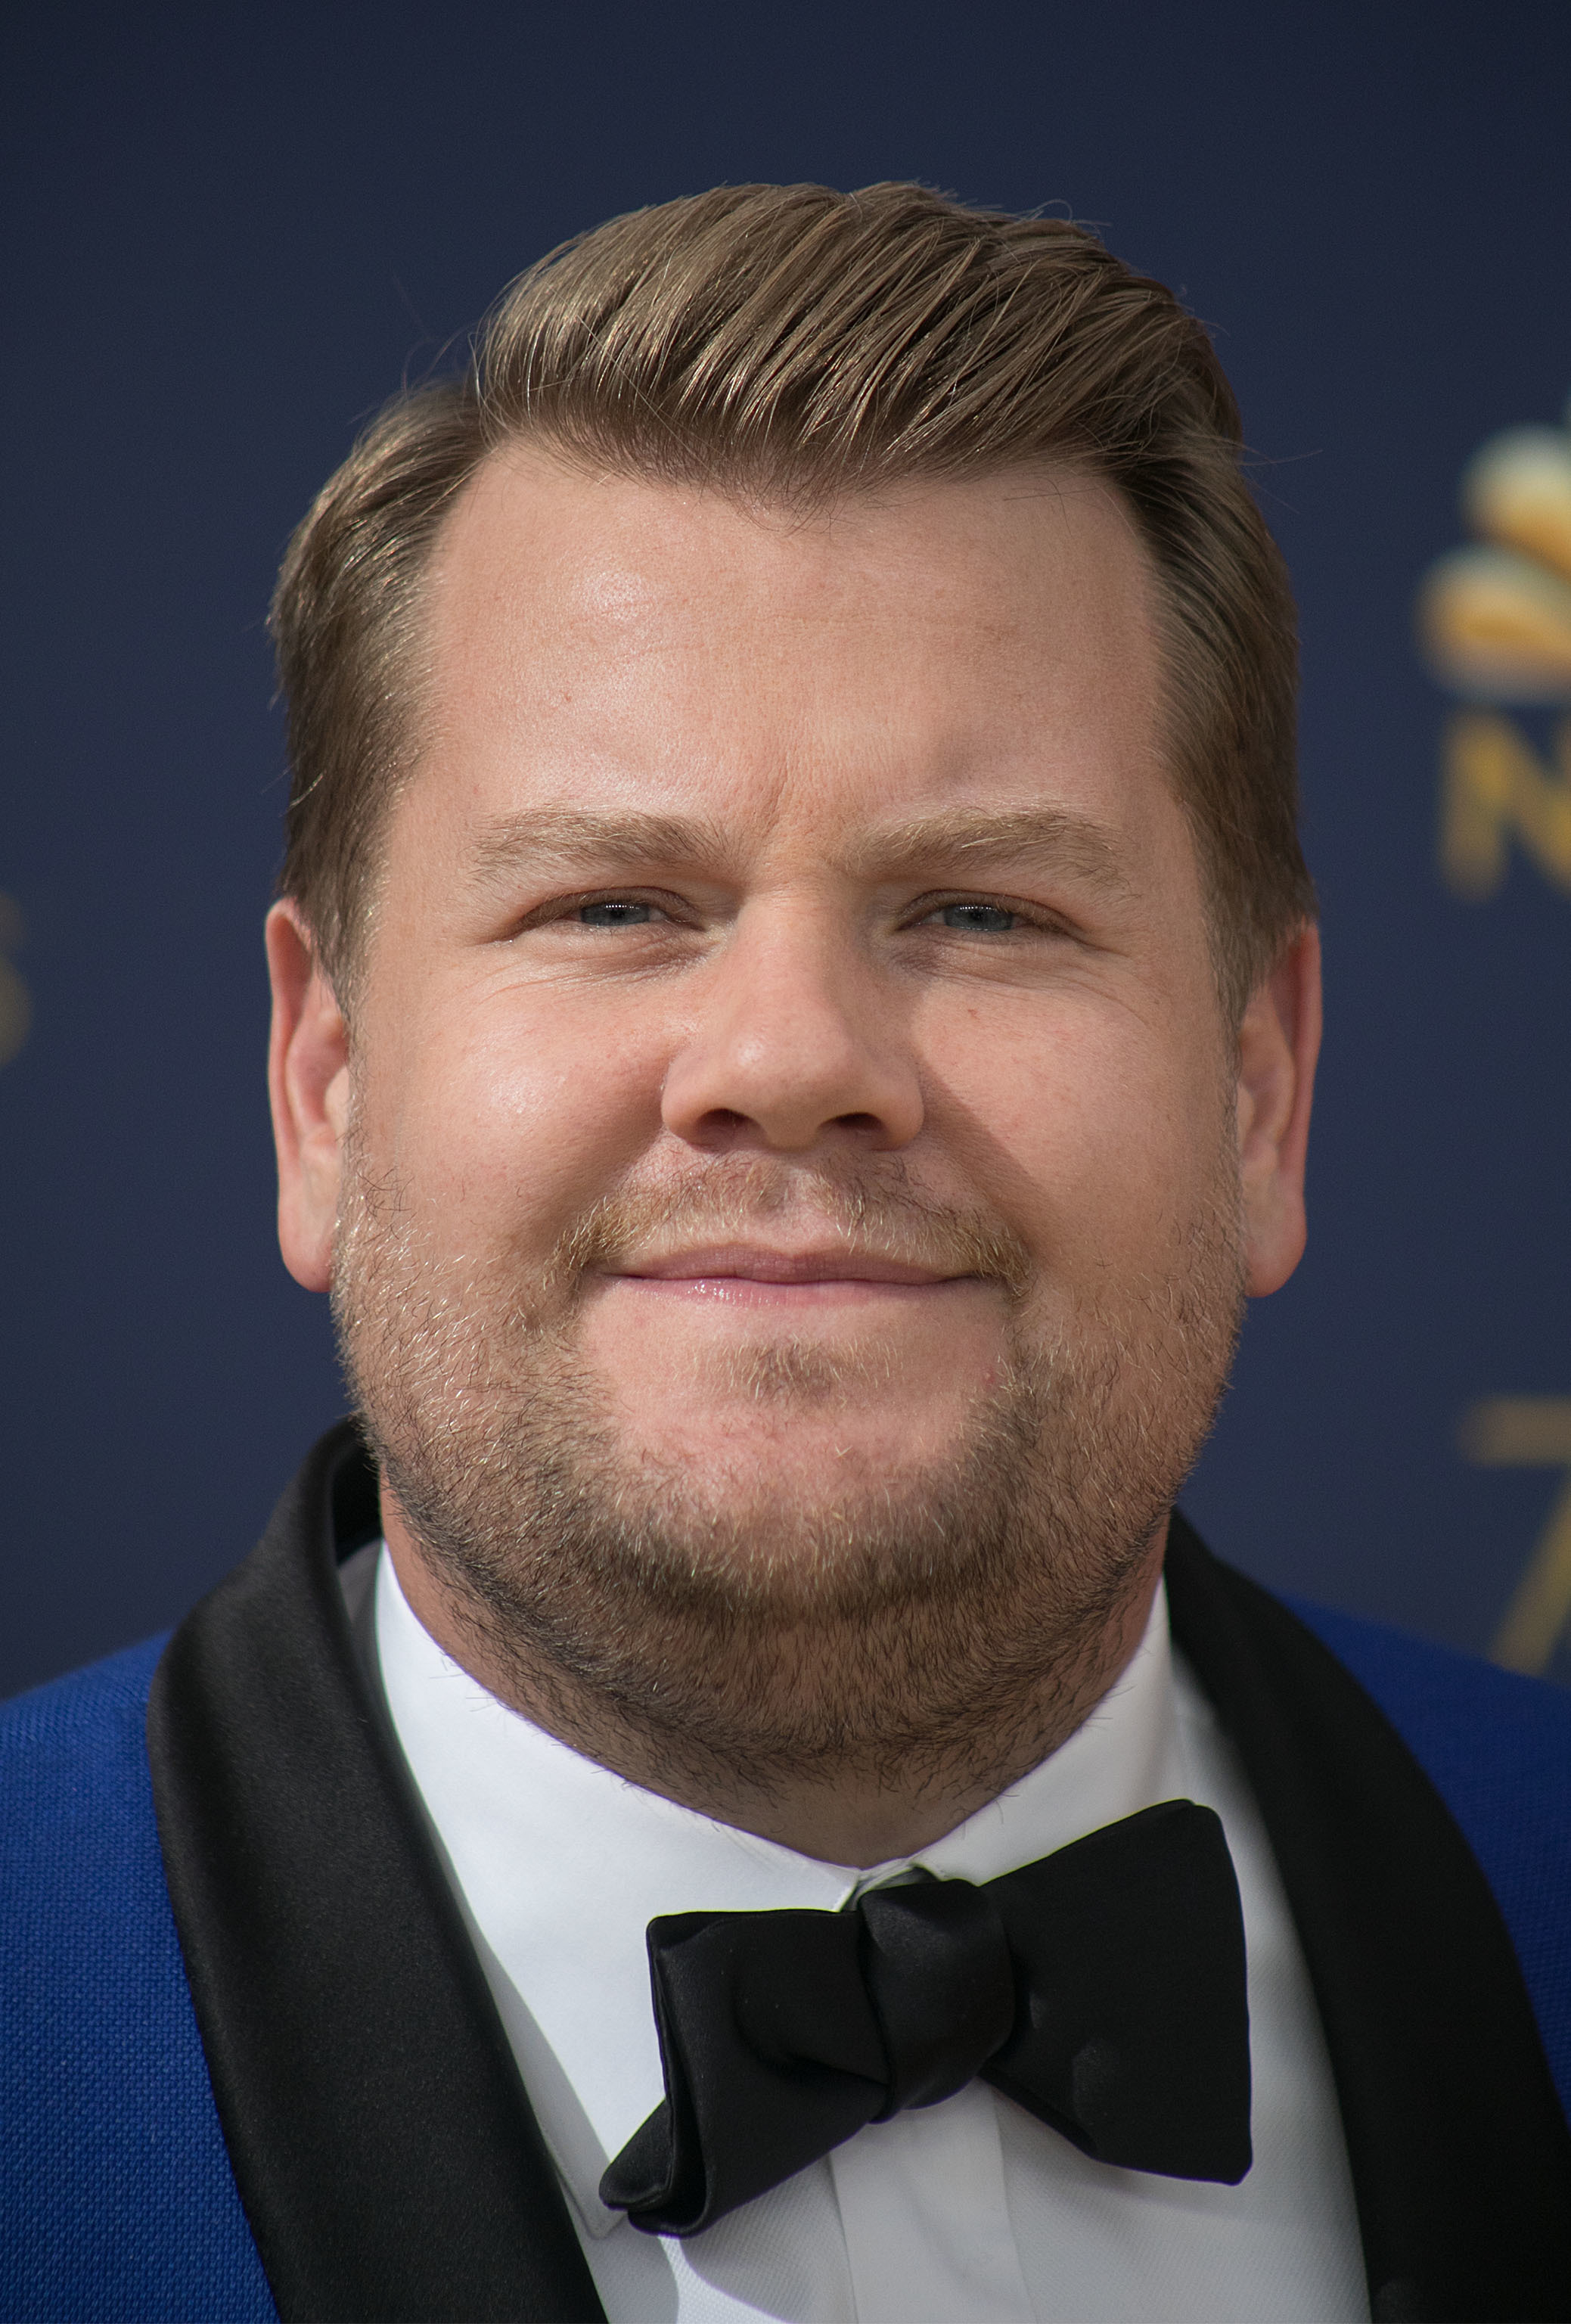 Corden was left shocked that someone could say something so awful. Credit: PA